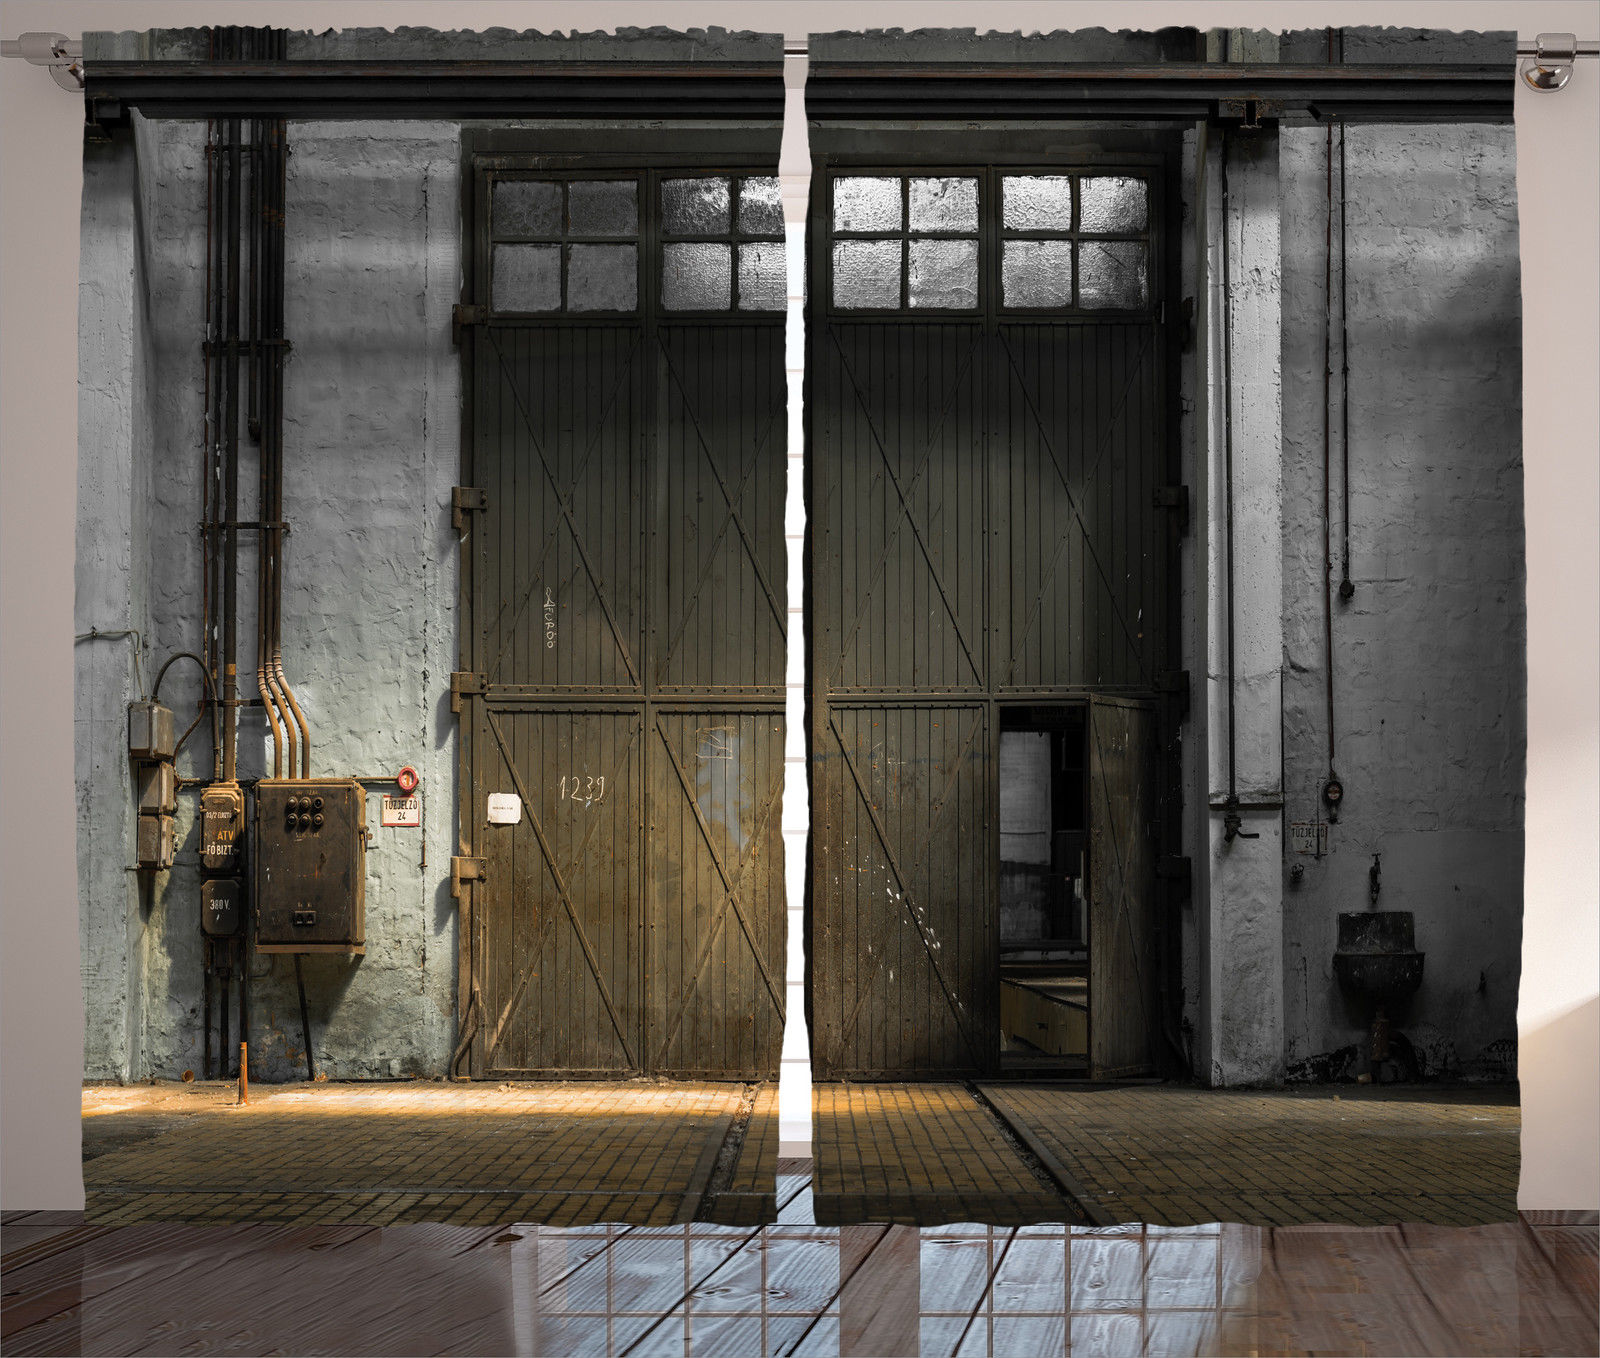 Entrance of rustic factory from 50s industrial decor image 50s home decor uk